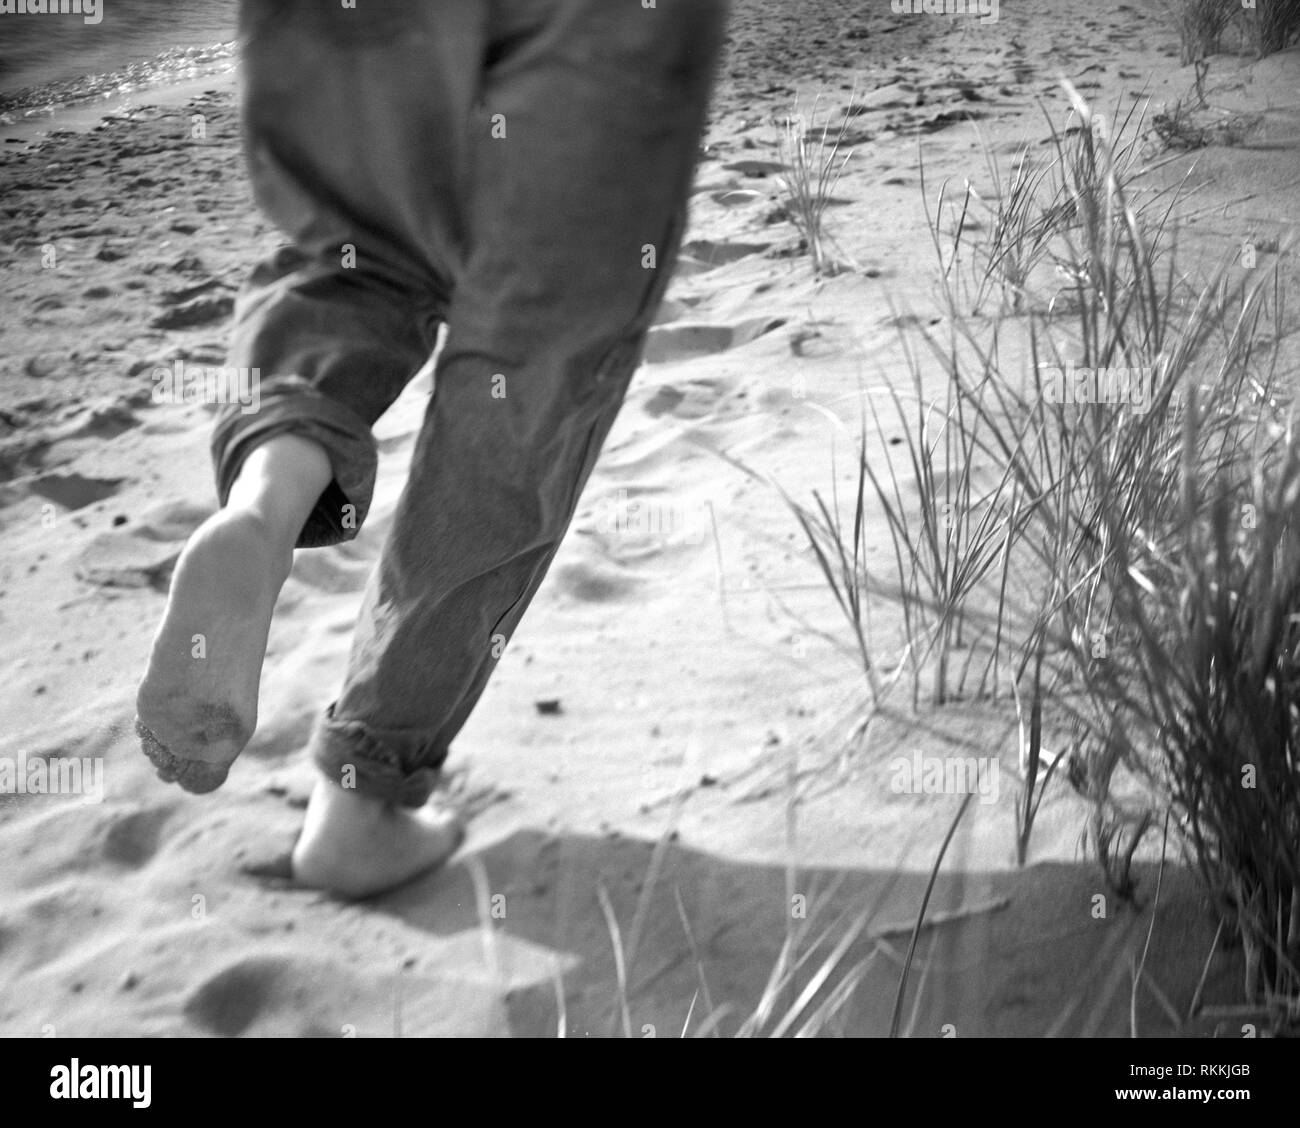 Man with rolled up pants running on sand at beach. - Stock Image